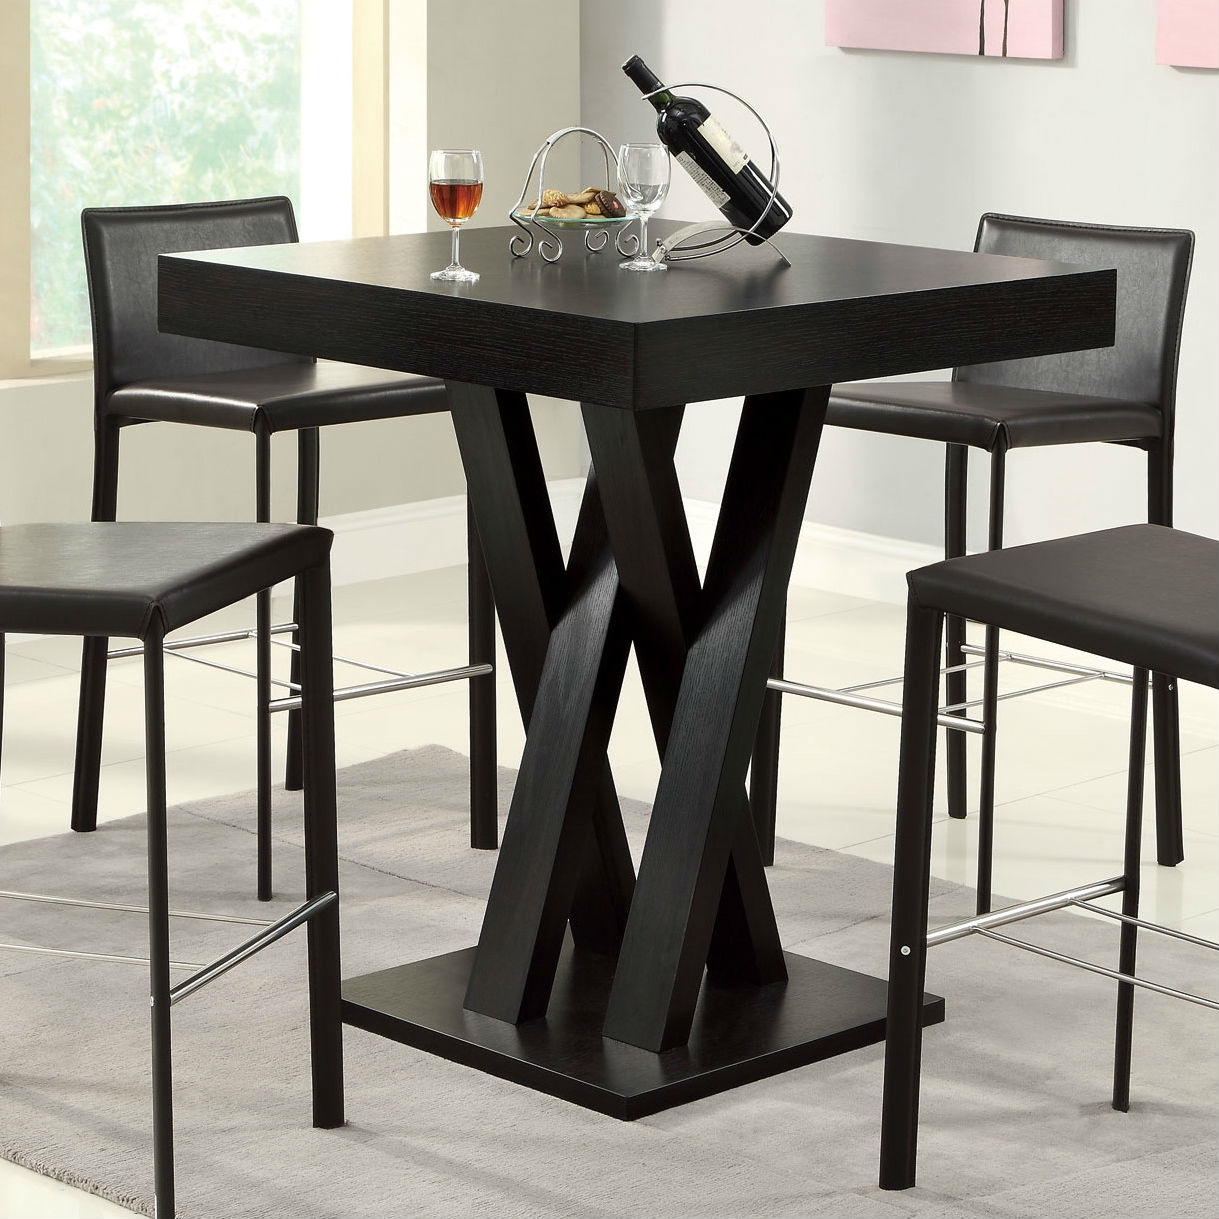 Modern 40-inch High Square Dining Table in Dark Cappuccino Finish ...